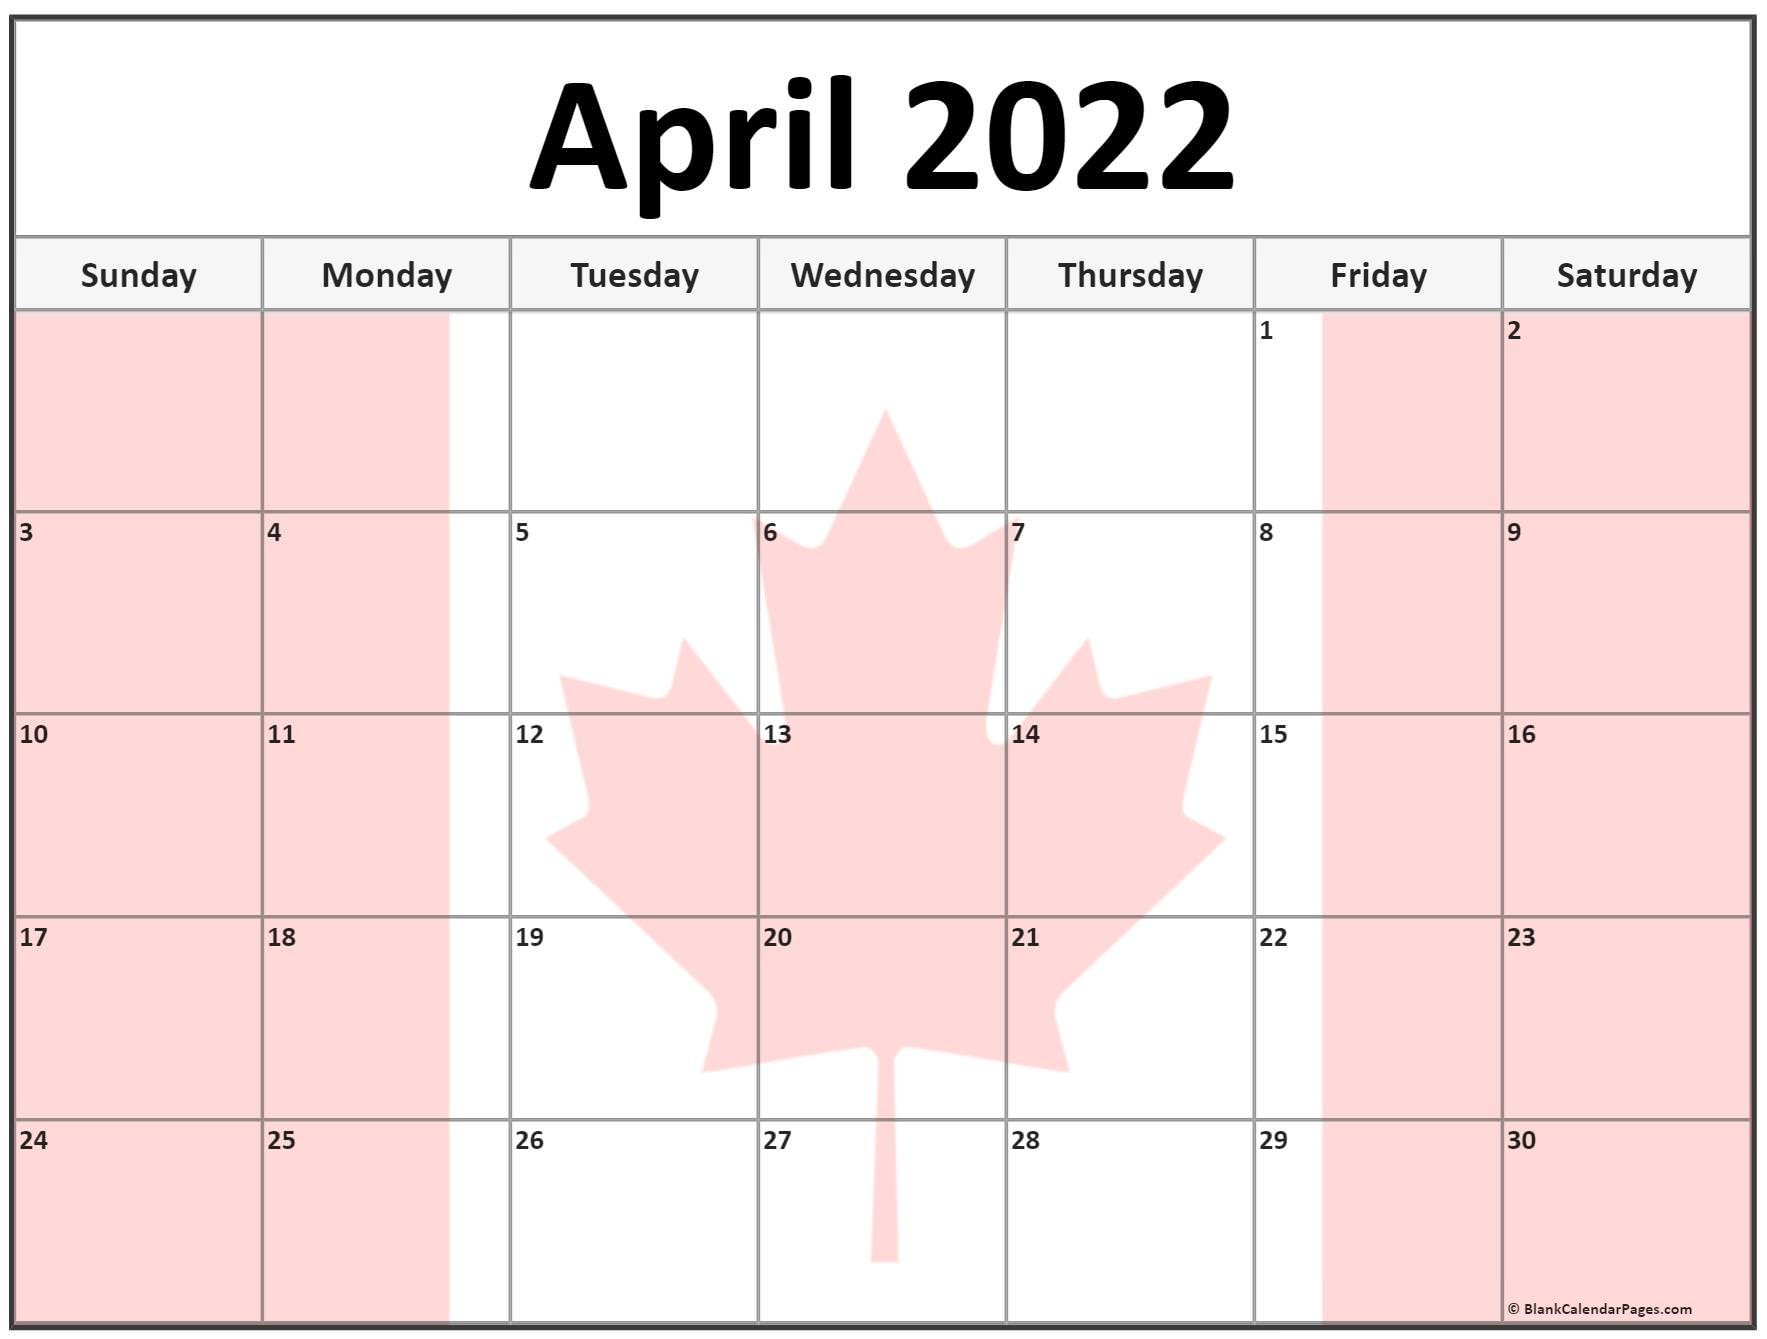 Collection Of April 2022 Photo Calendars With Image Filters. pertaining to April 2022 Printable Calendar Free